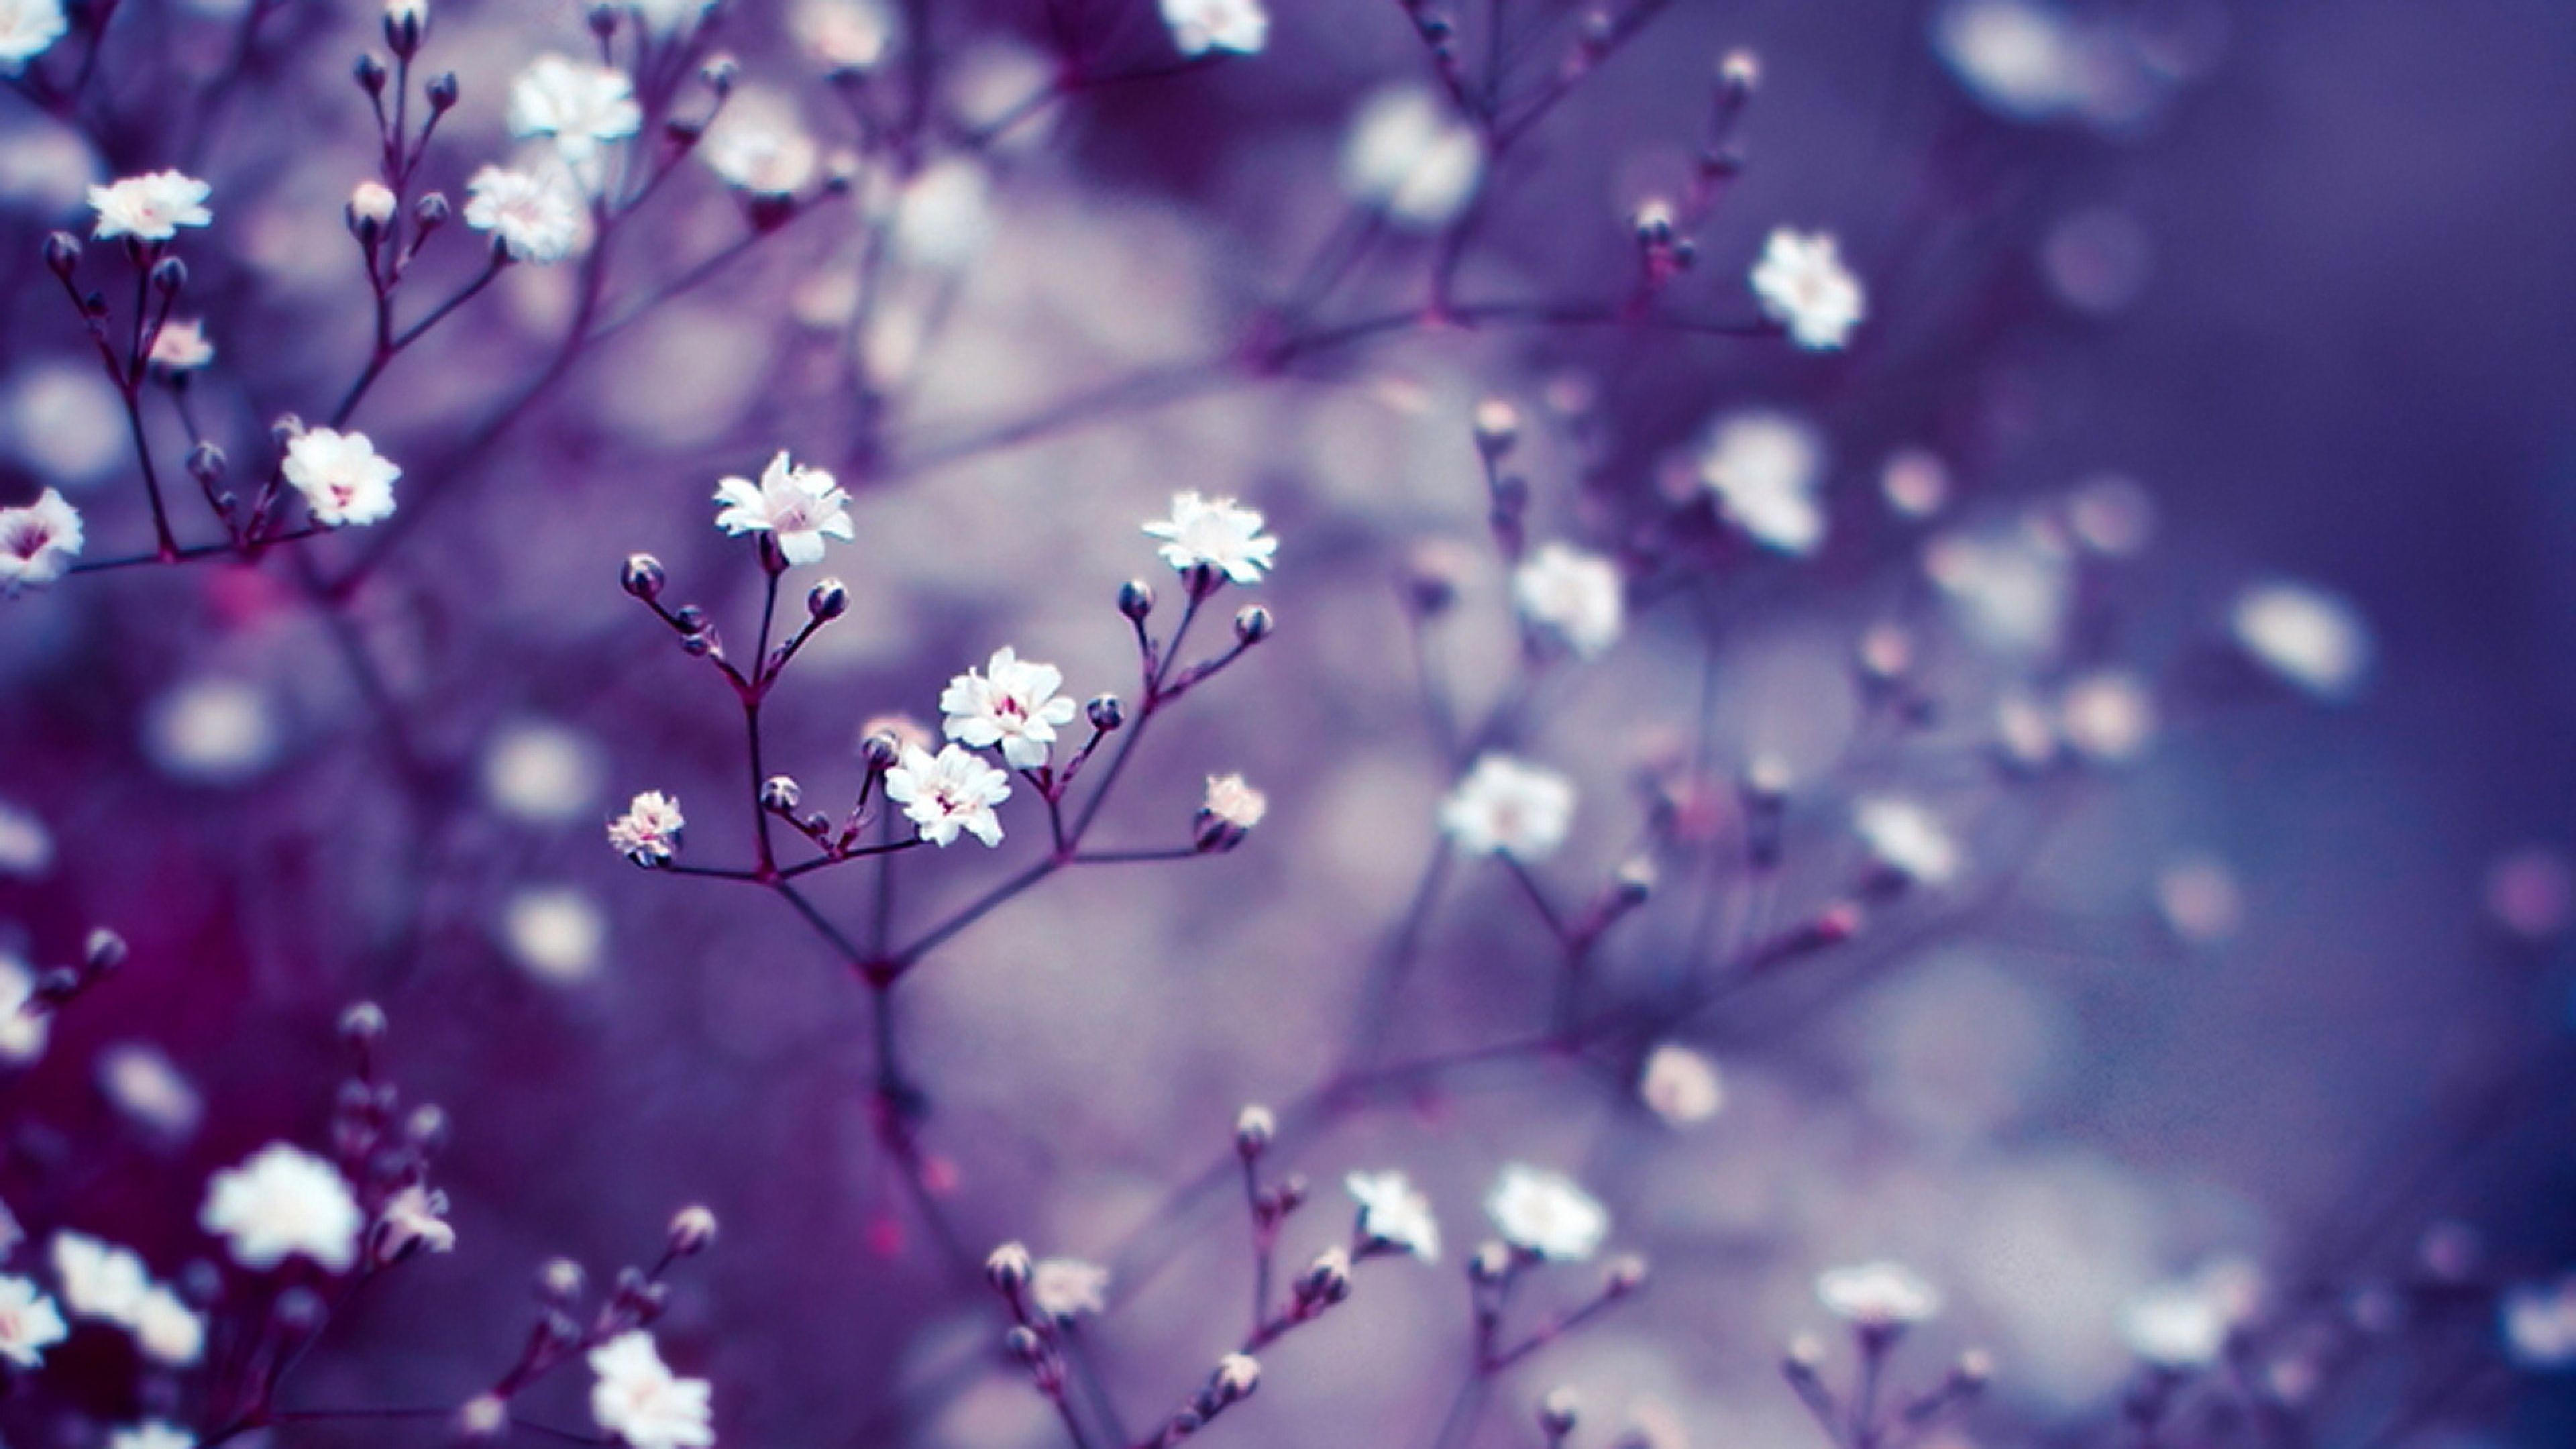 Floral Background Hd Images